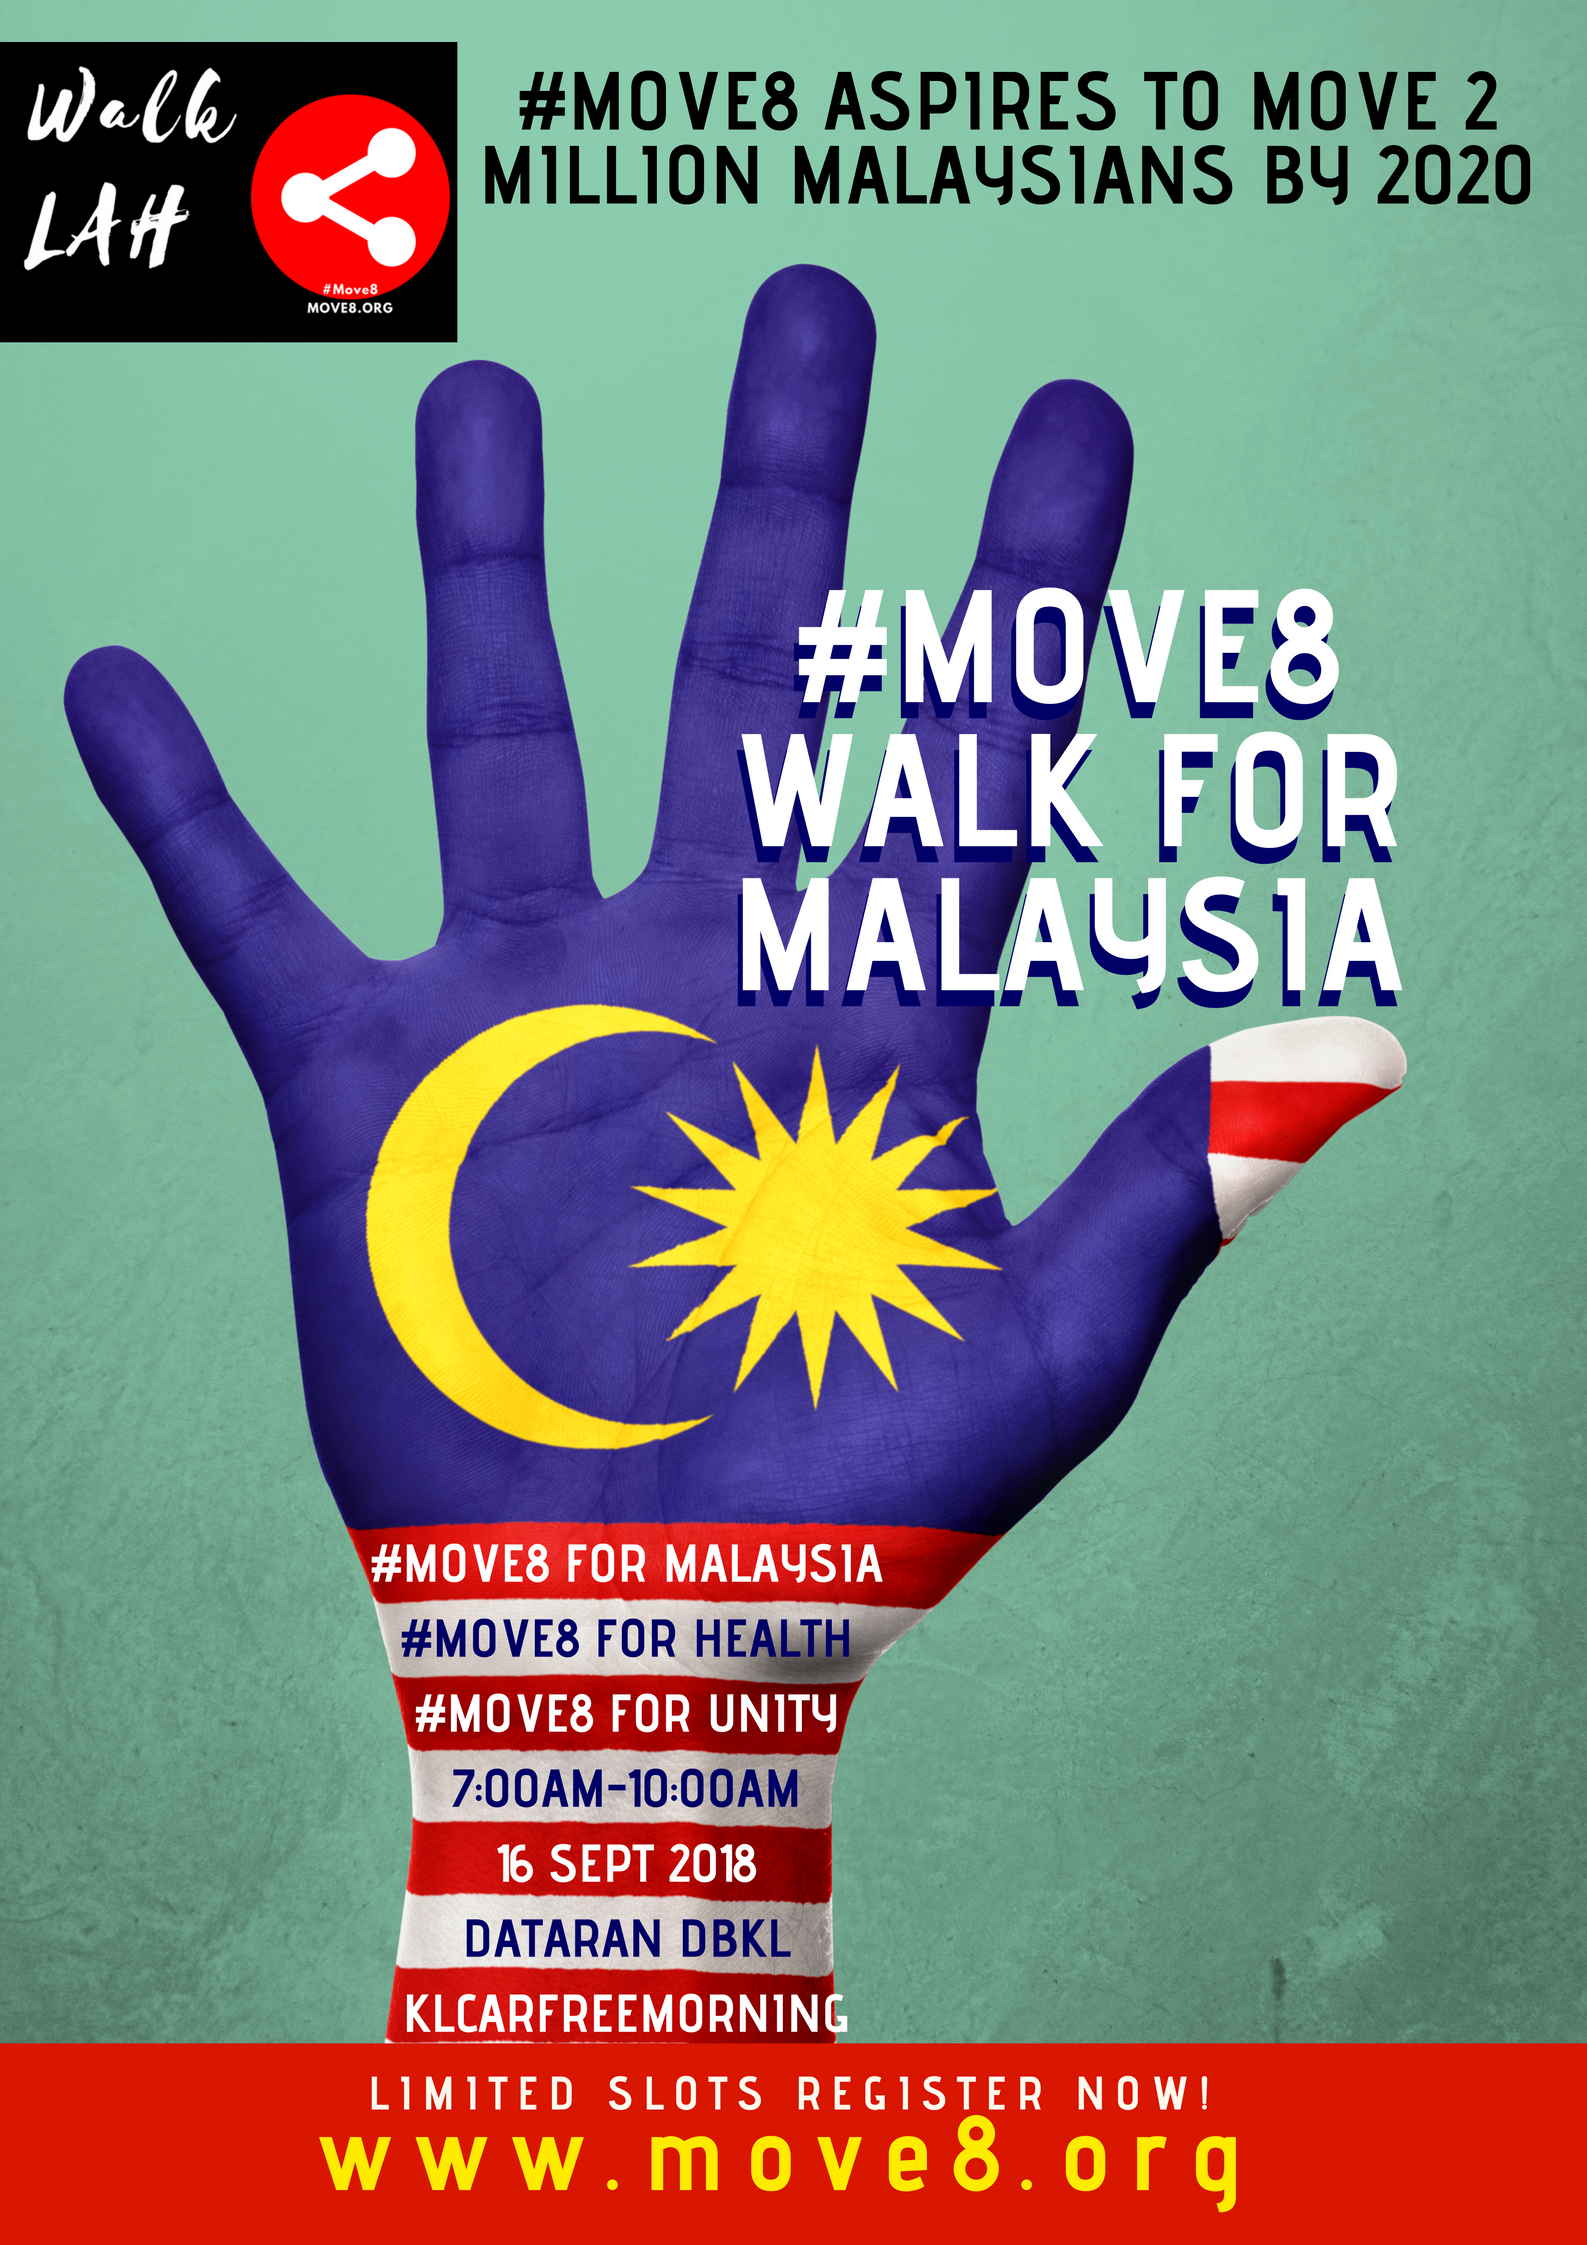 #Move8 for Malaysia Day Walkathon